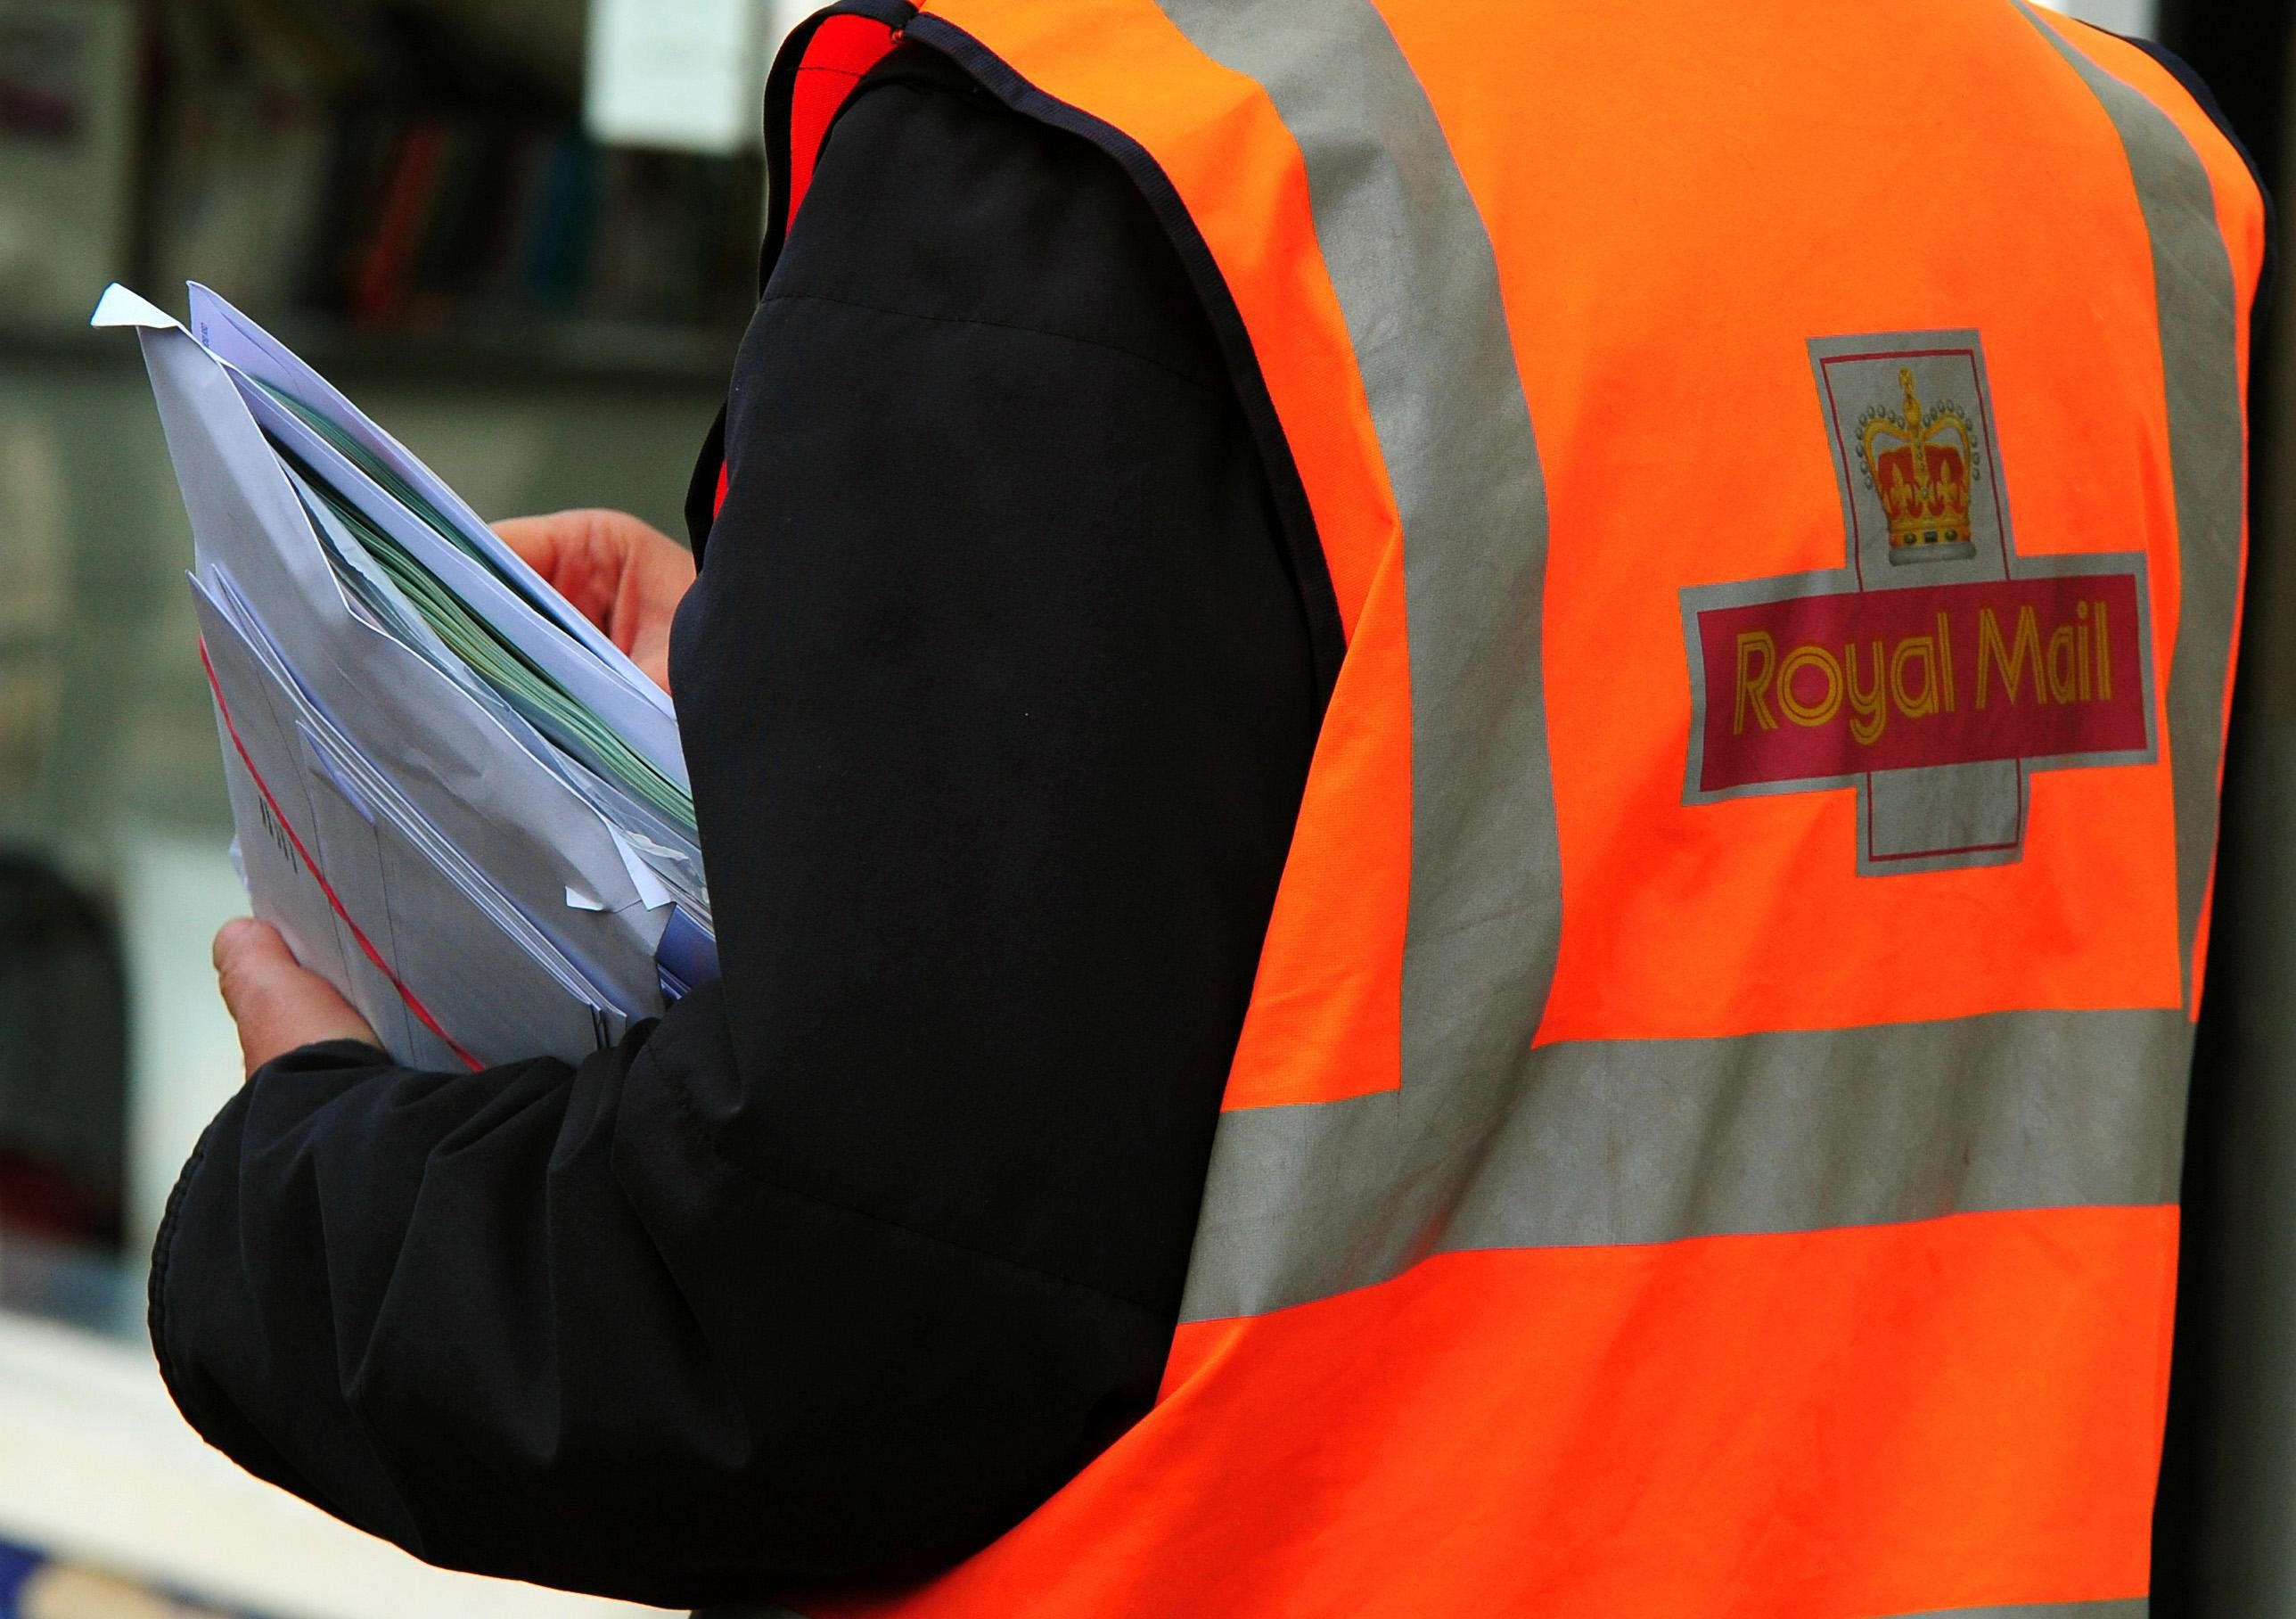 Royal Mail Is Charging Couples With Different Surnames Double To Forward